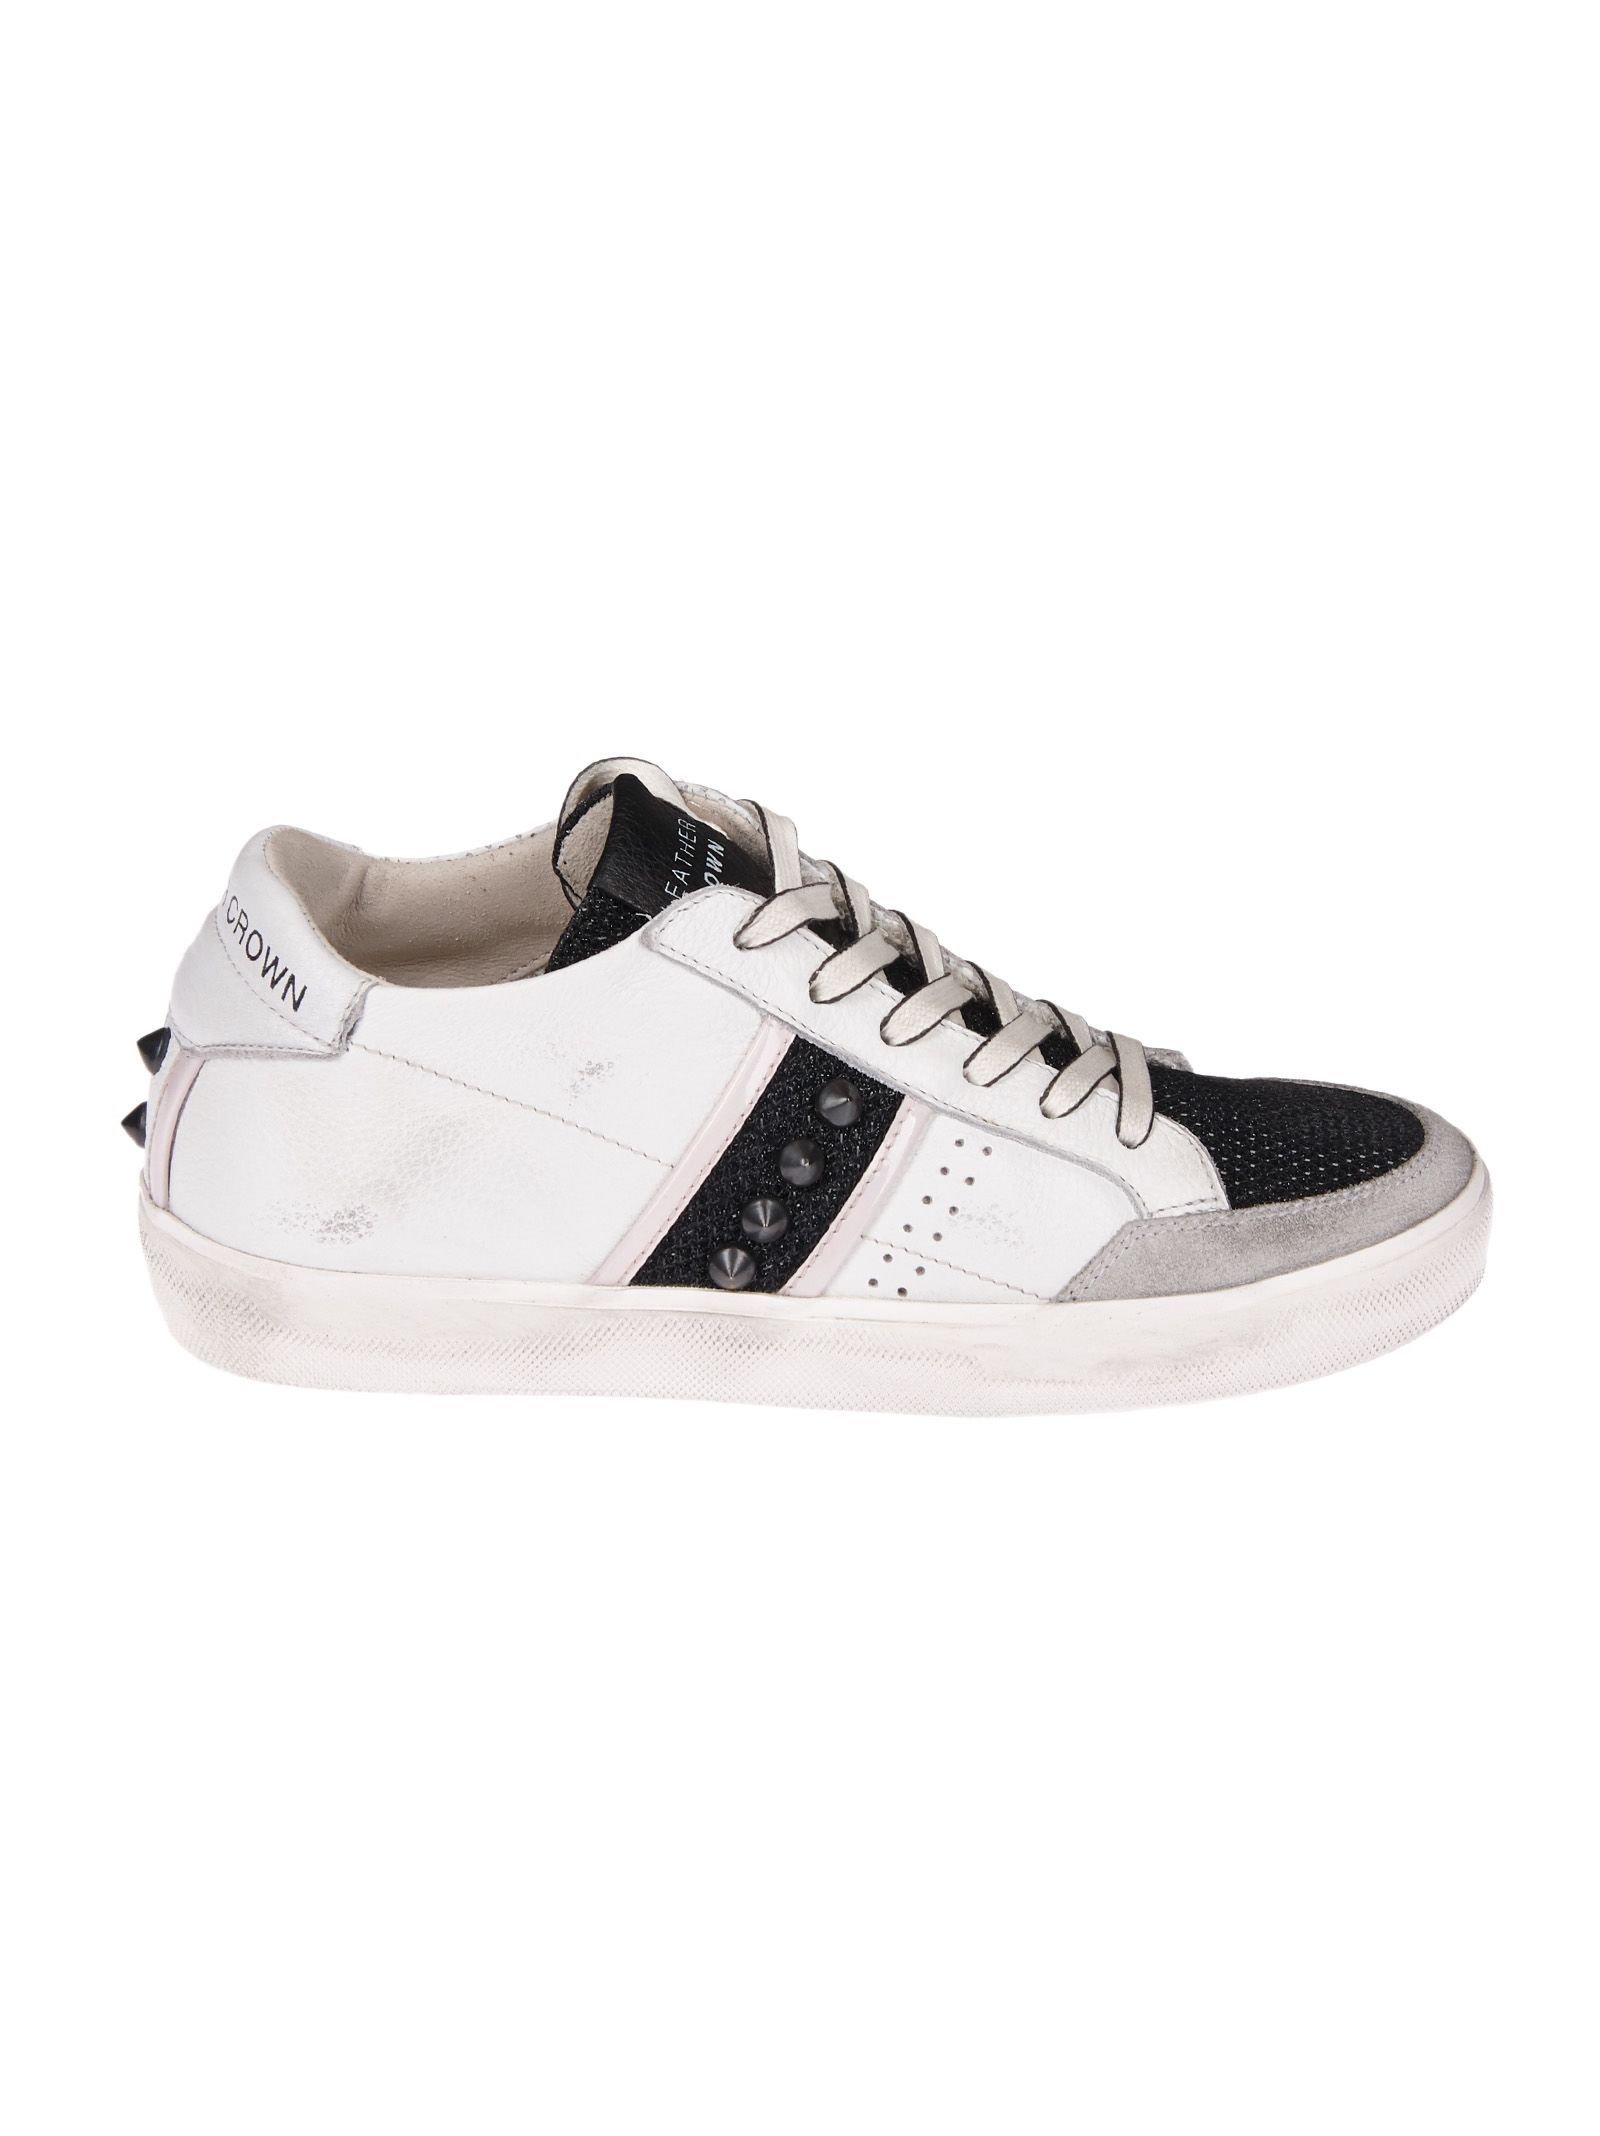 stud panelled sneakers - White Leather Crown nBZjAoxVrW